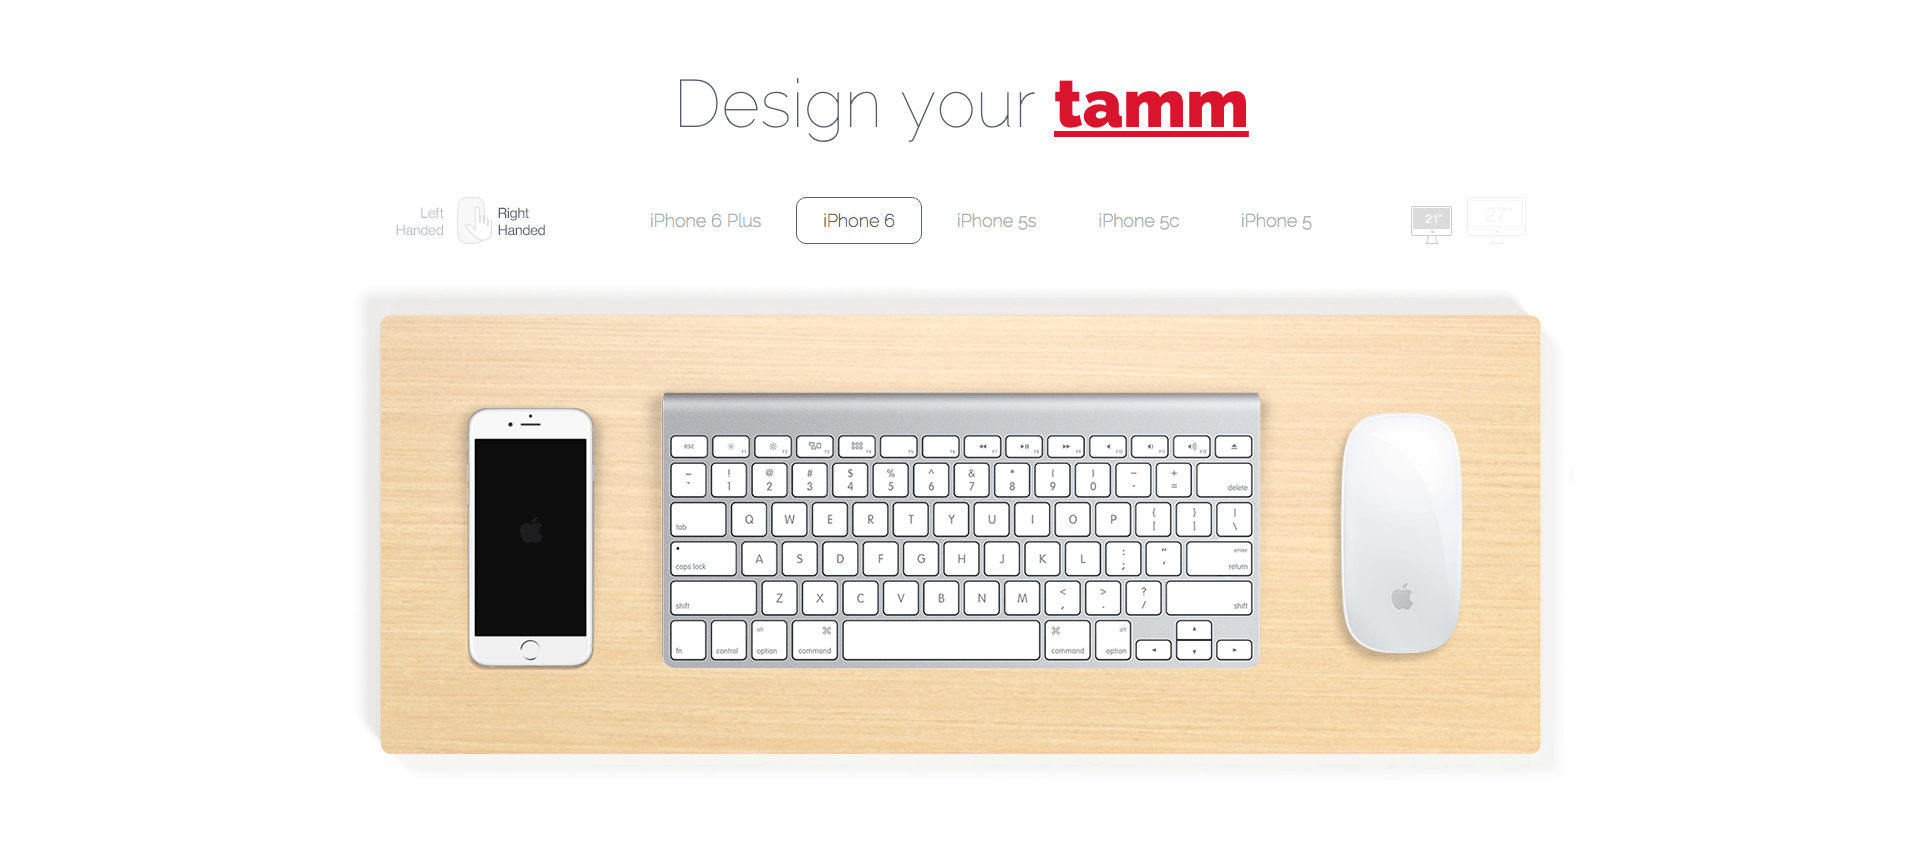 tamm - iPhone Dock & iMac Desk Organizer